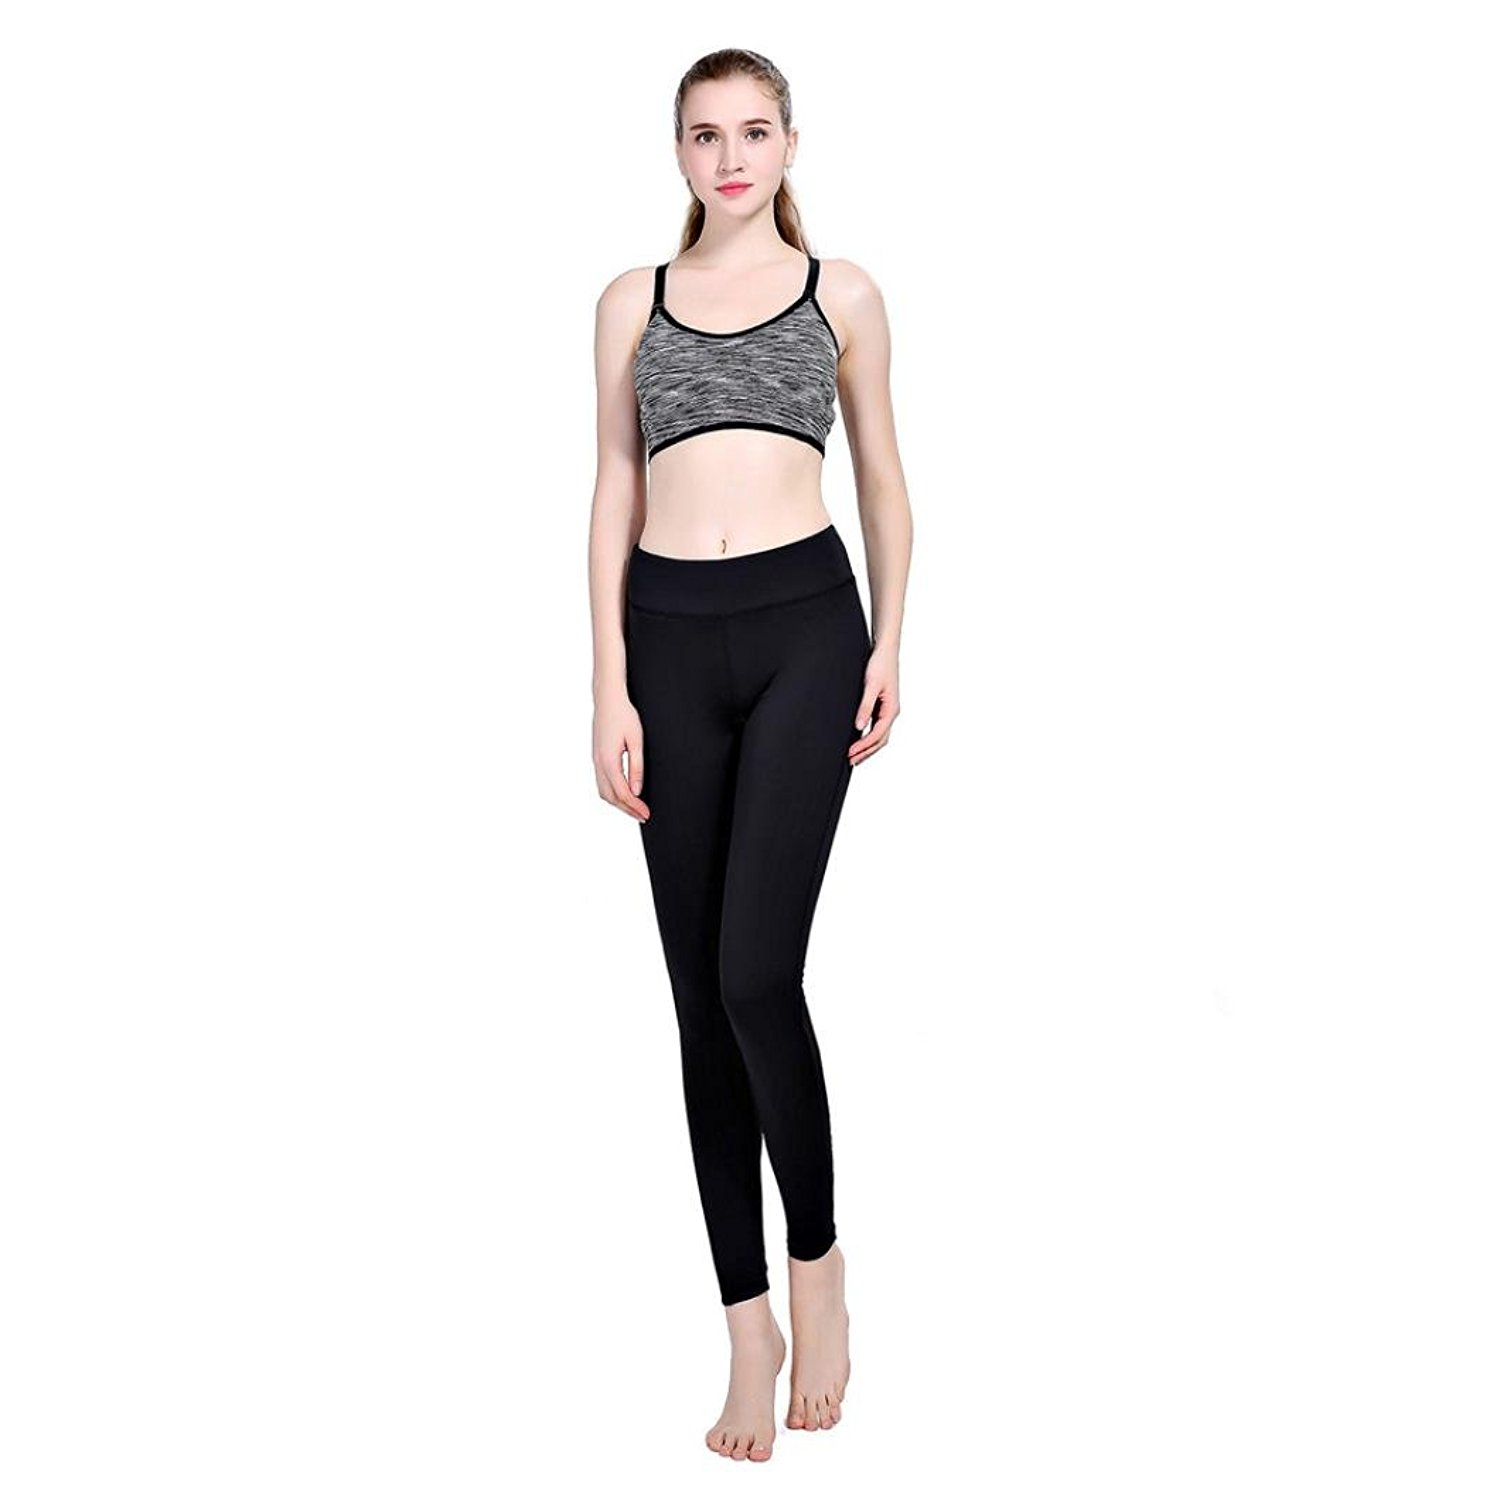 d849163107293d Get Quotations · Yoga Pants, GOODCULLER Women Fitness Leggings Mesh  Patchwork Skinny Push Up Pants